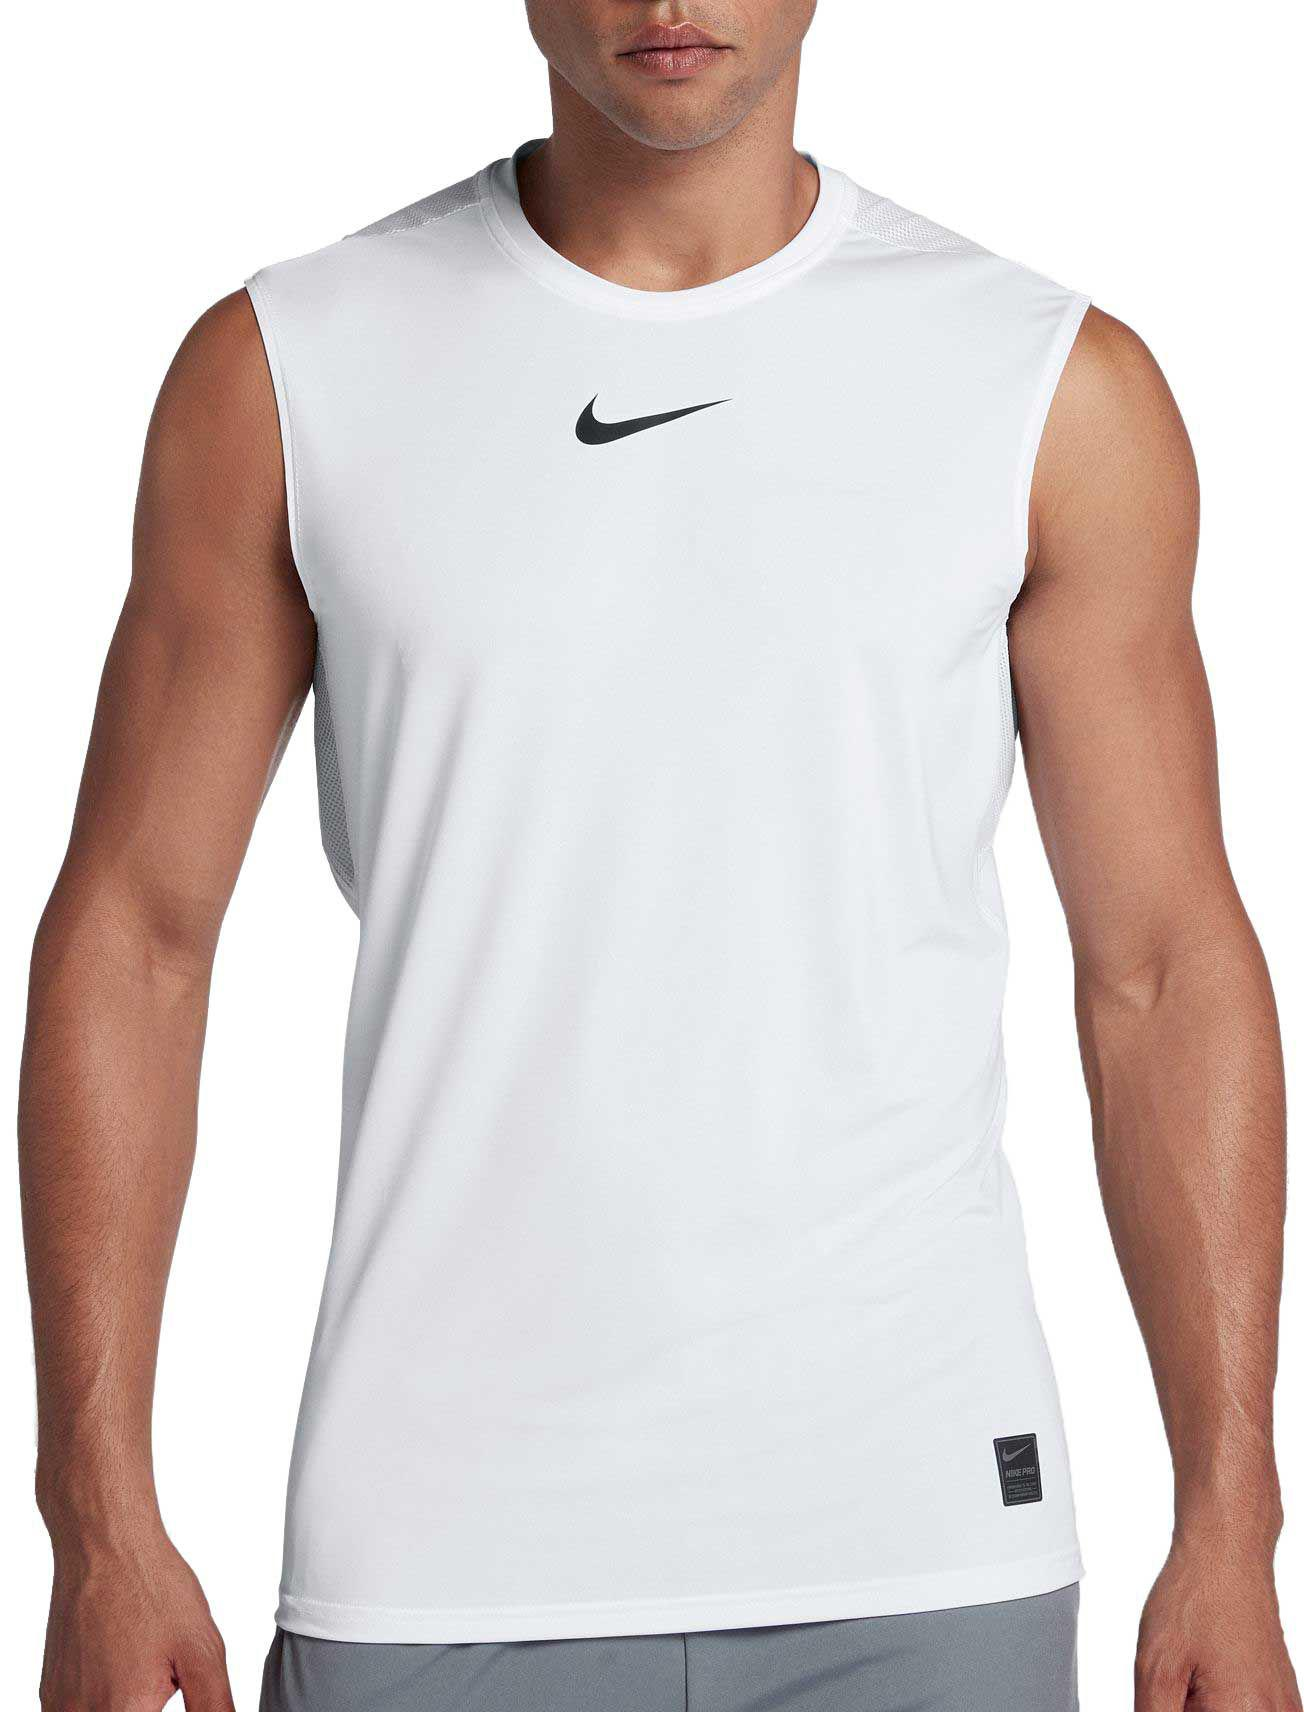 418e970c5679c Lyst - Nike Pro Fitted Sleeveless Shirt in White for Men